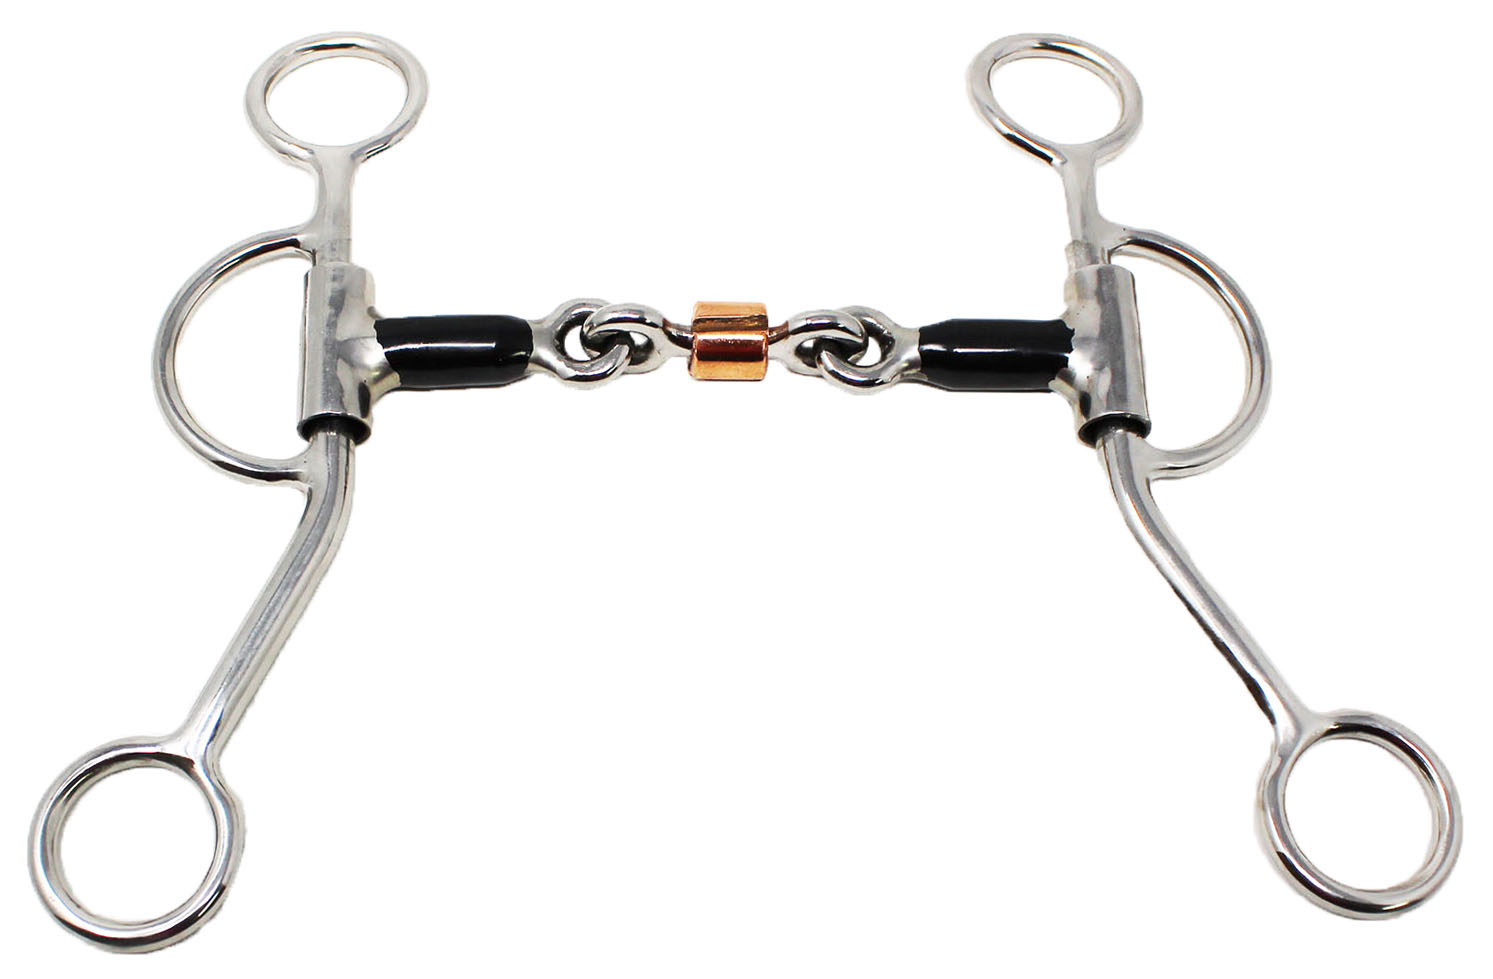 Horse Sweet Iron Mouth Dog Bone Snaffle Bit W Roller